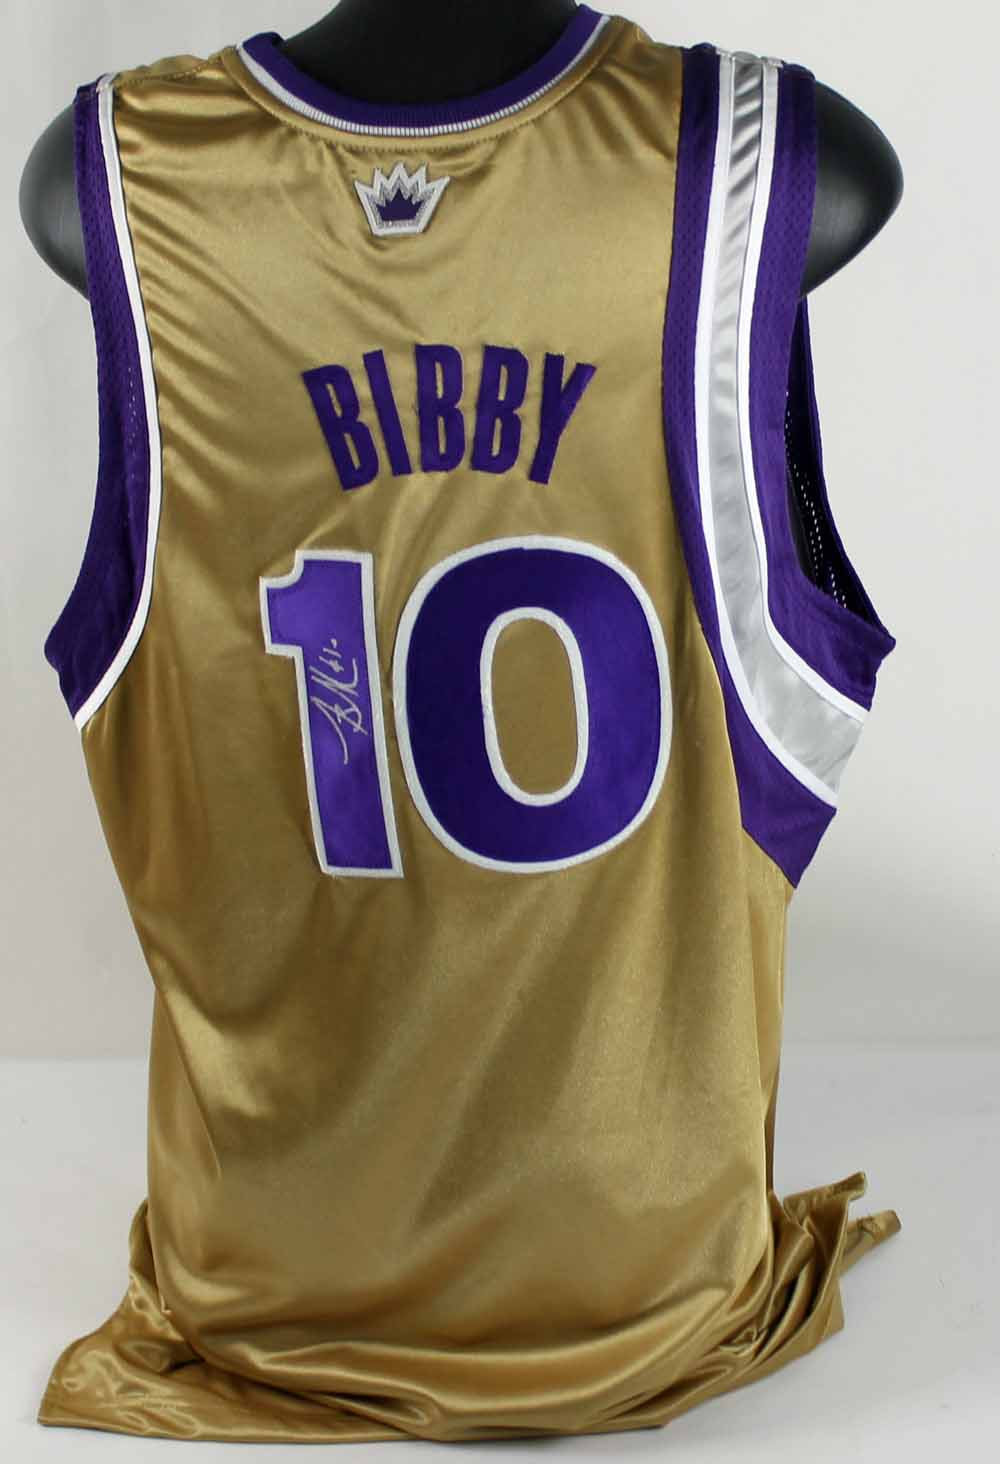 huge discount 0d3b2 18429 Lot Detail - Lot of 2 Mike Bibby Game-Used & Signed ...